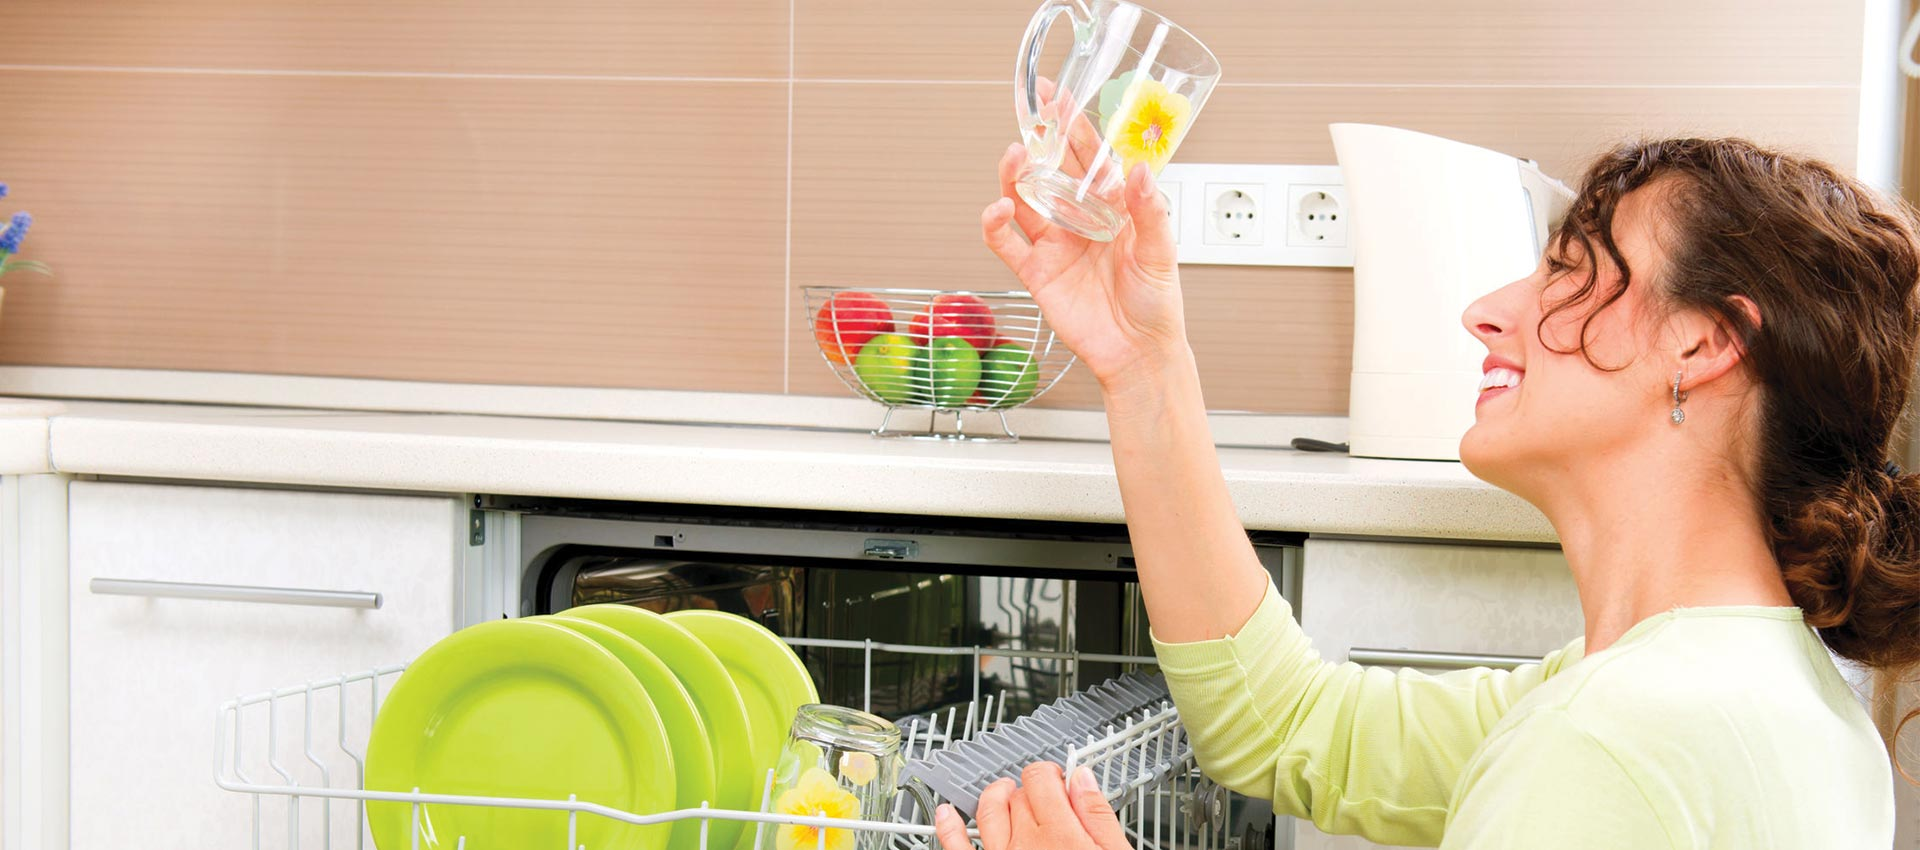 Lady looking at clean glass from dishwasher